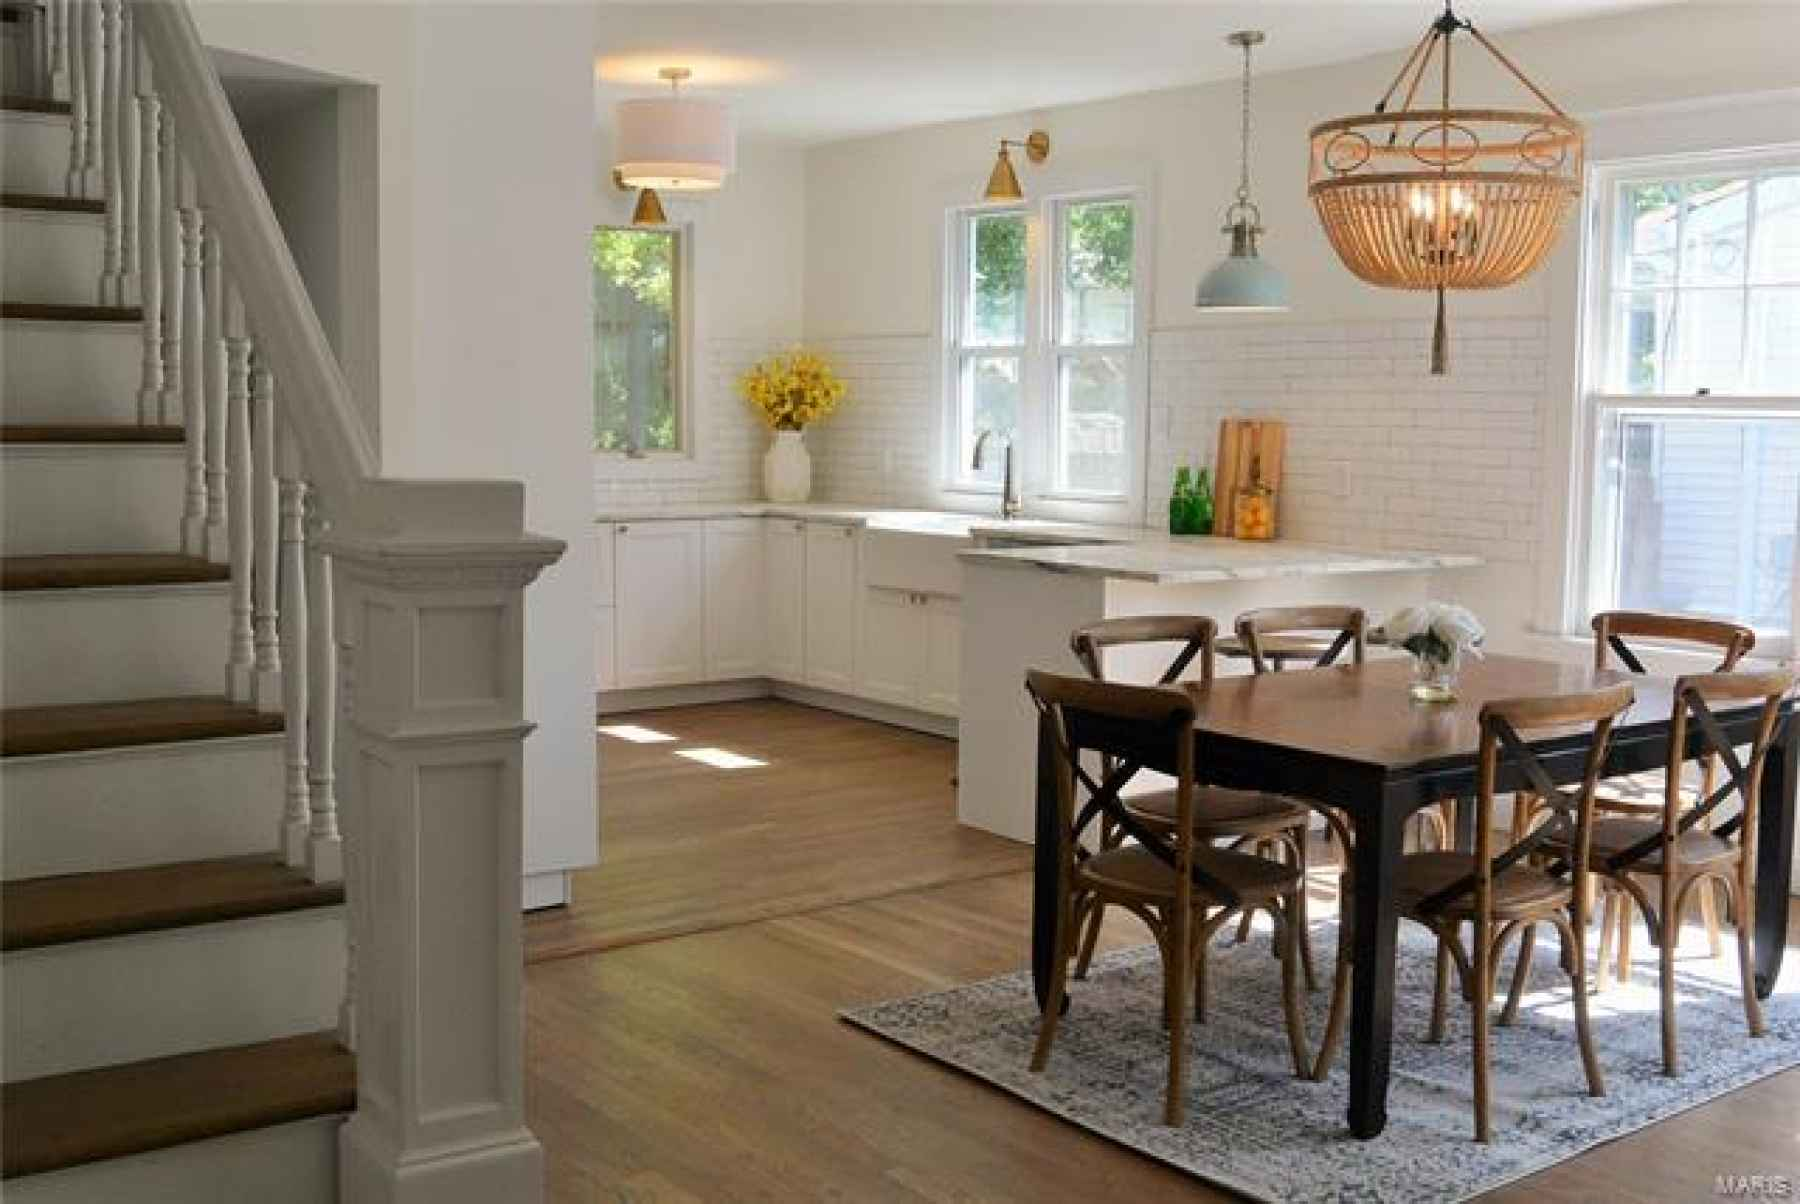 Dining area and new white kitchen. New dining light fixture, hardwoods throughout.